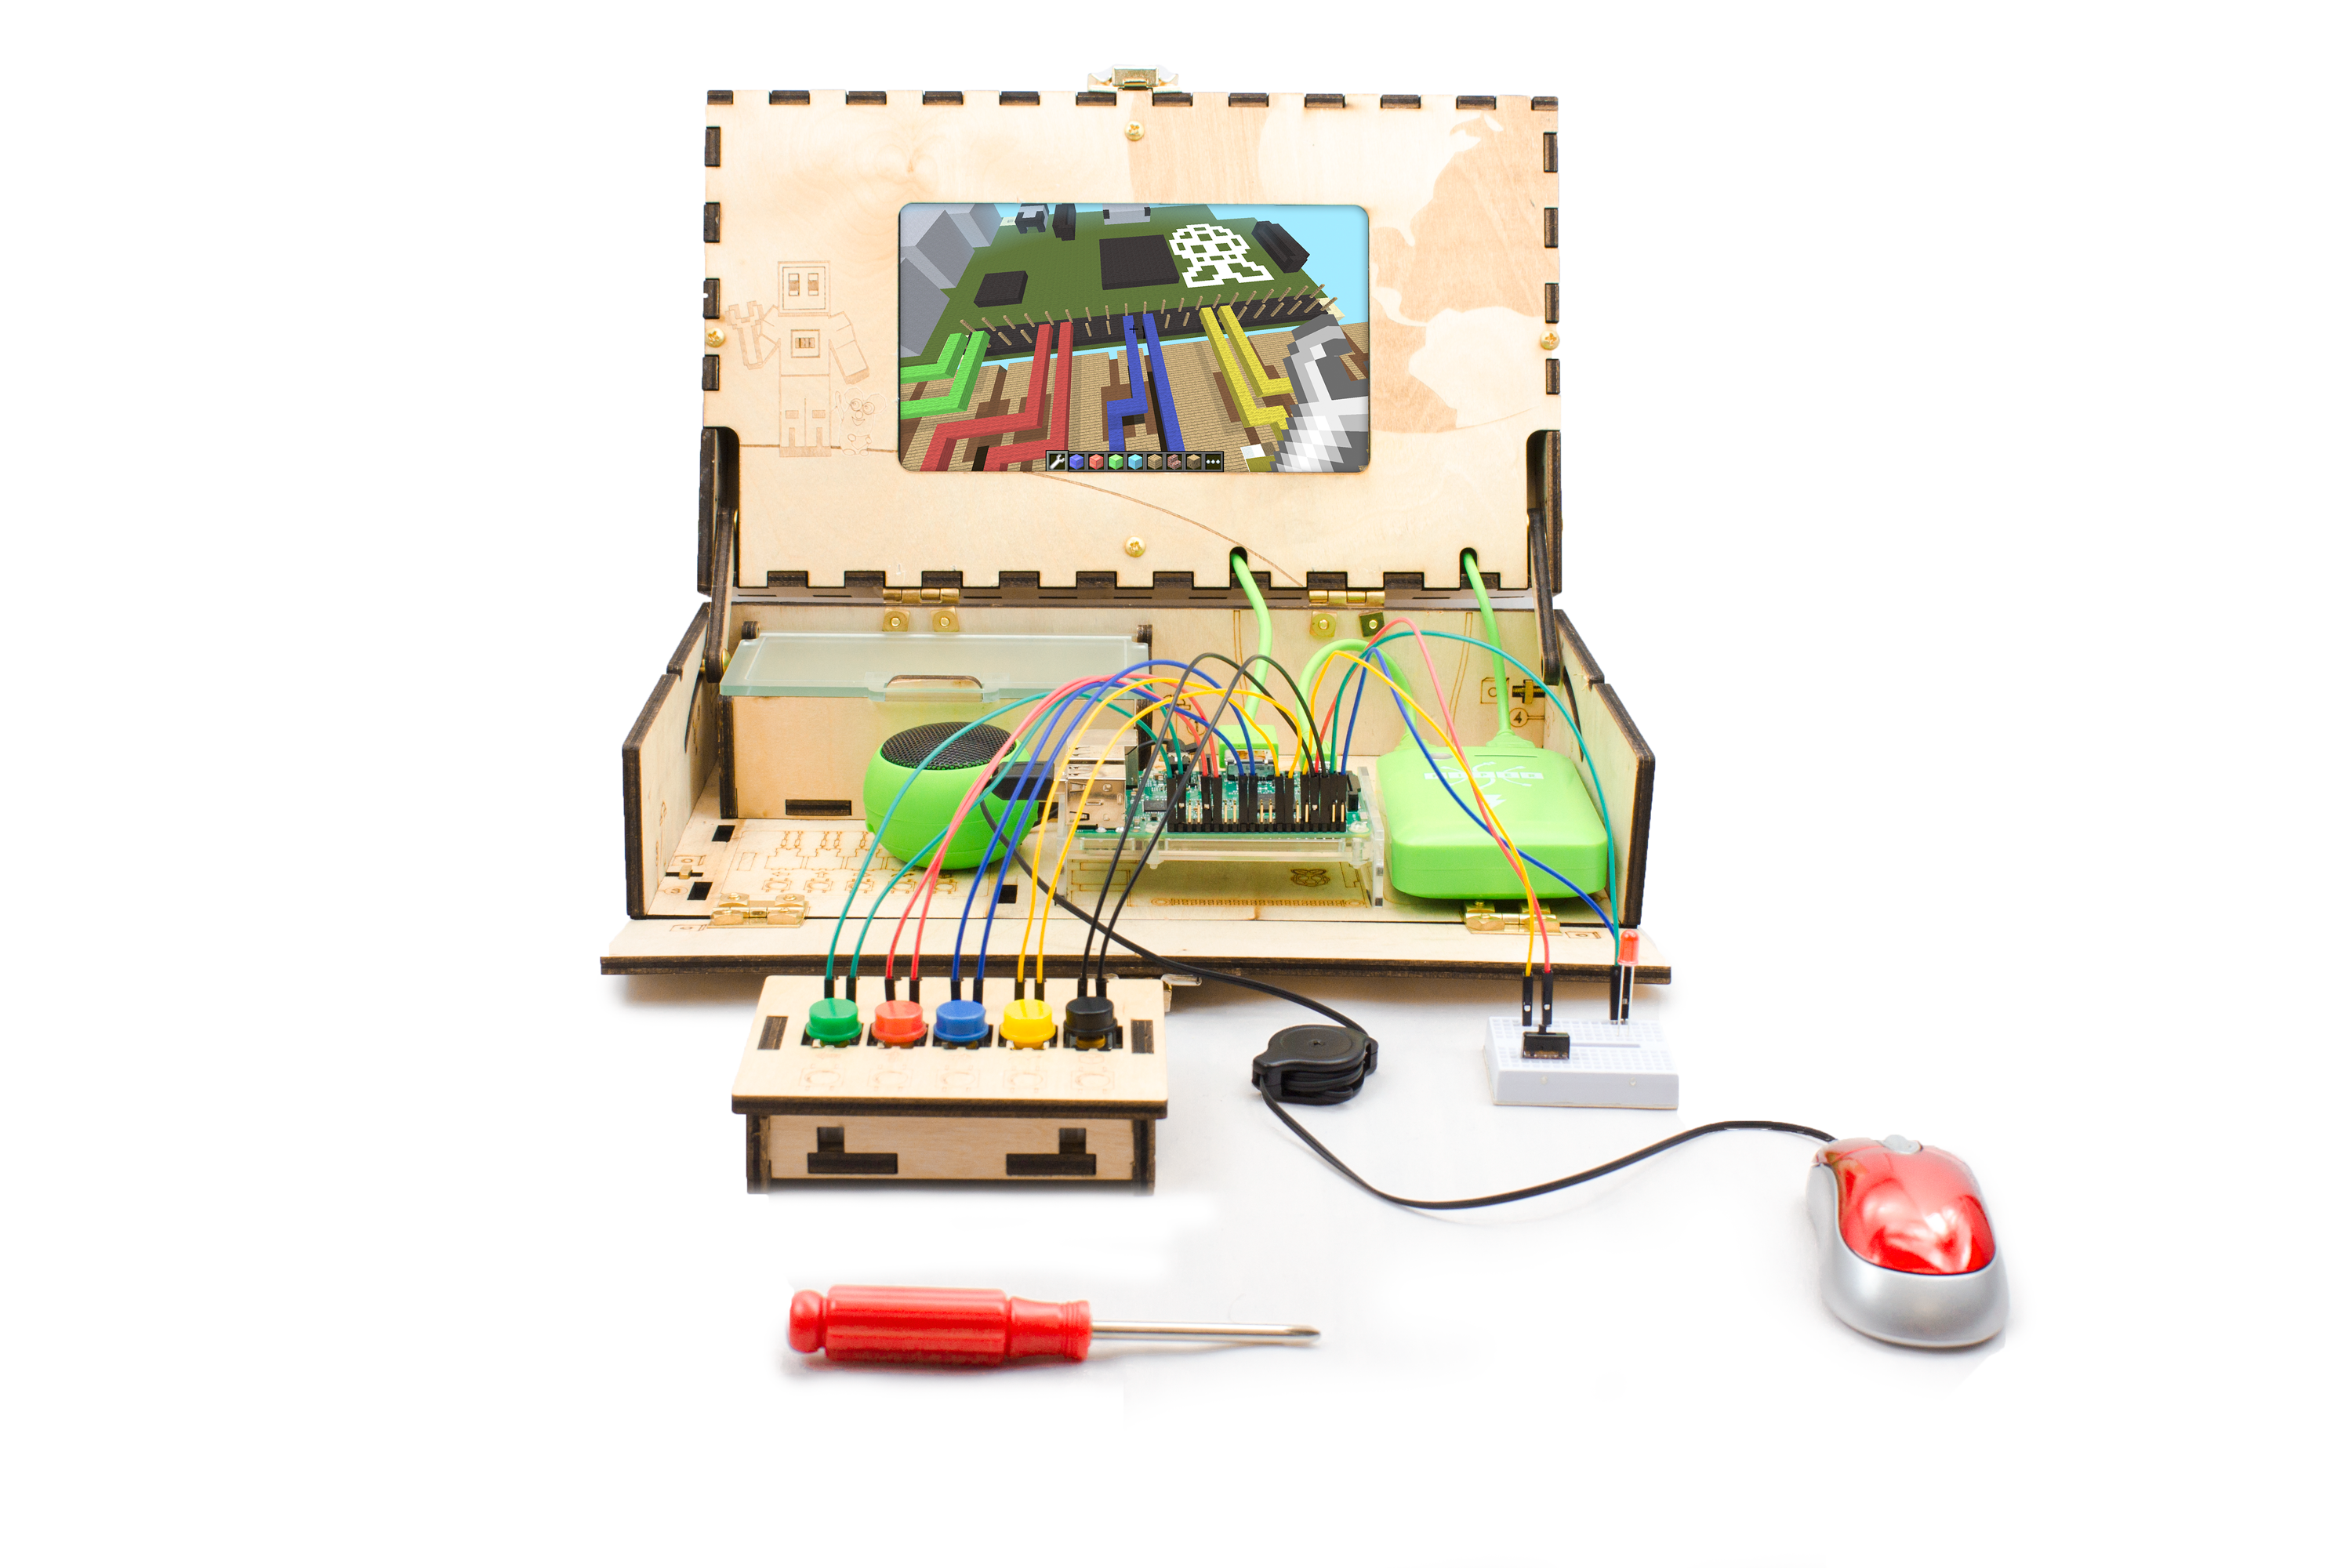 Piper Is A Diy Computer Kit For Kids To Learn Engineering Through Electronic Kits Minecraft Pi Edition